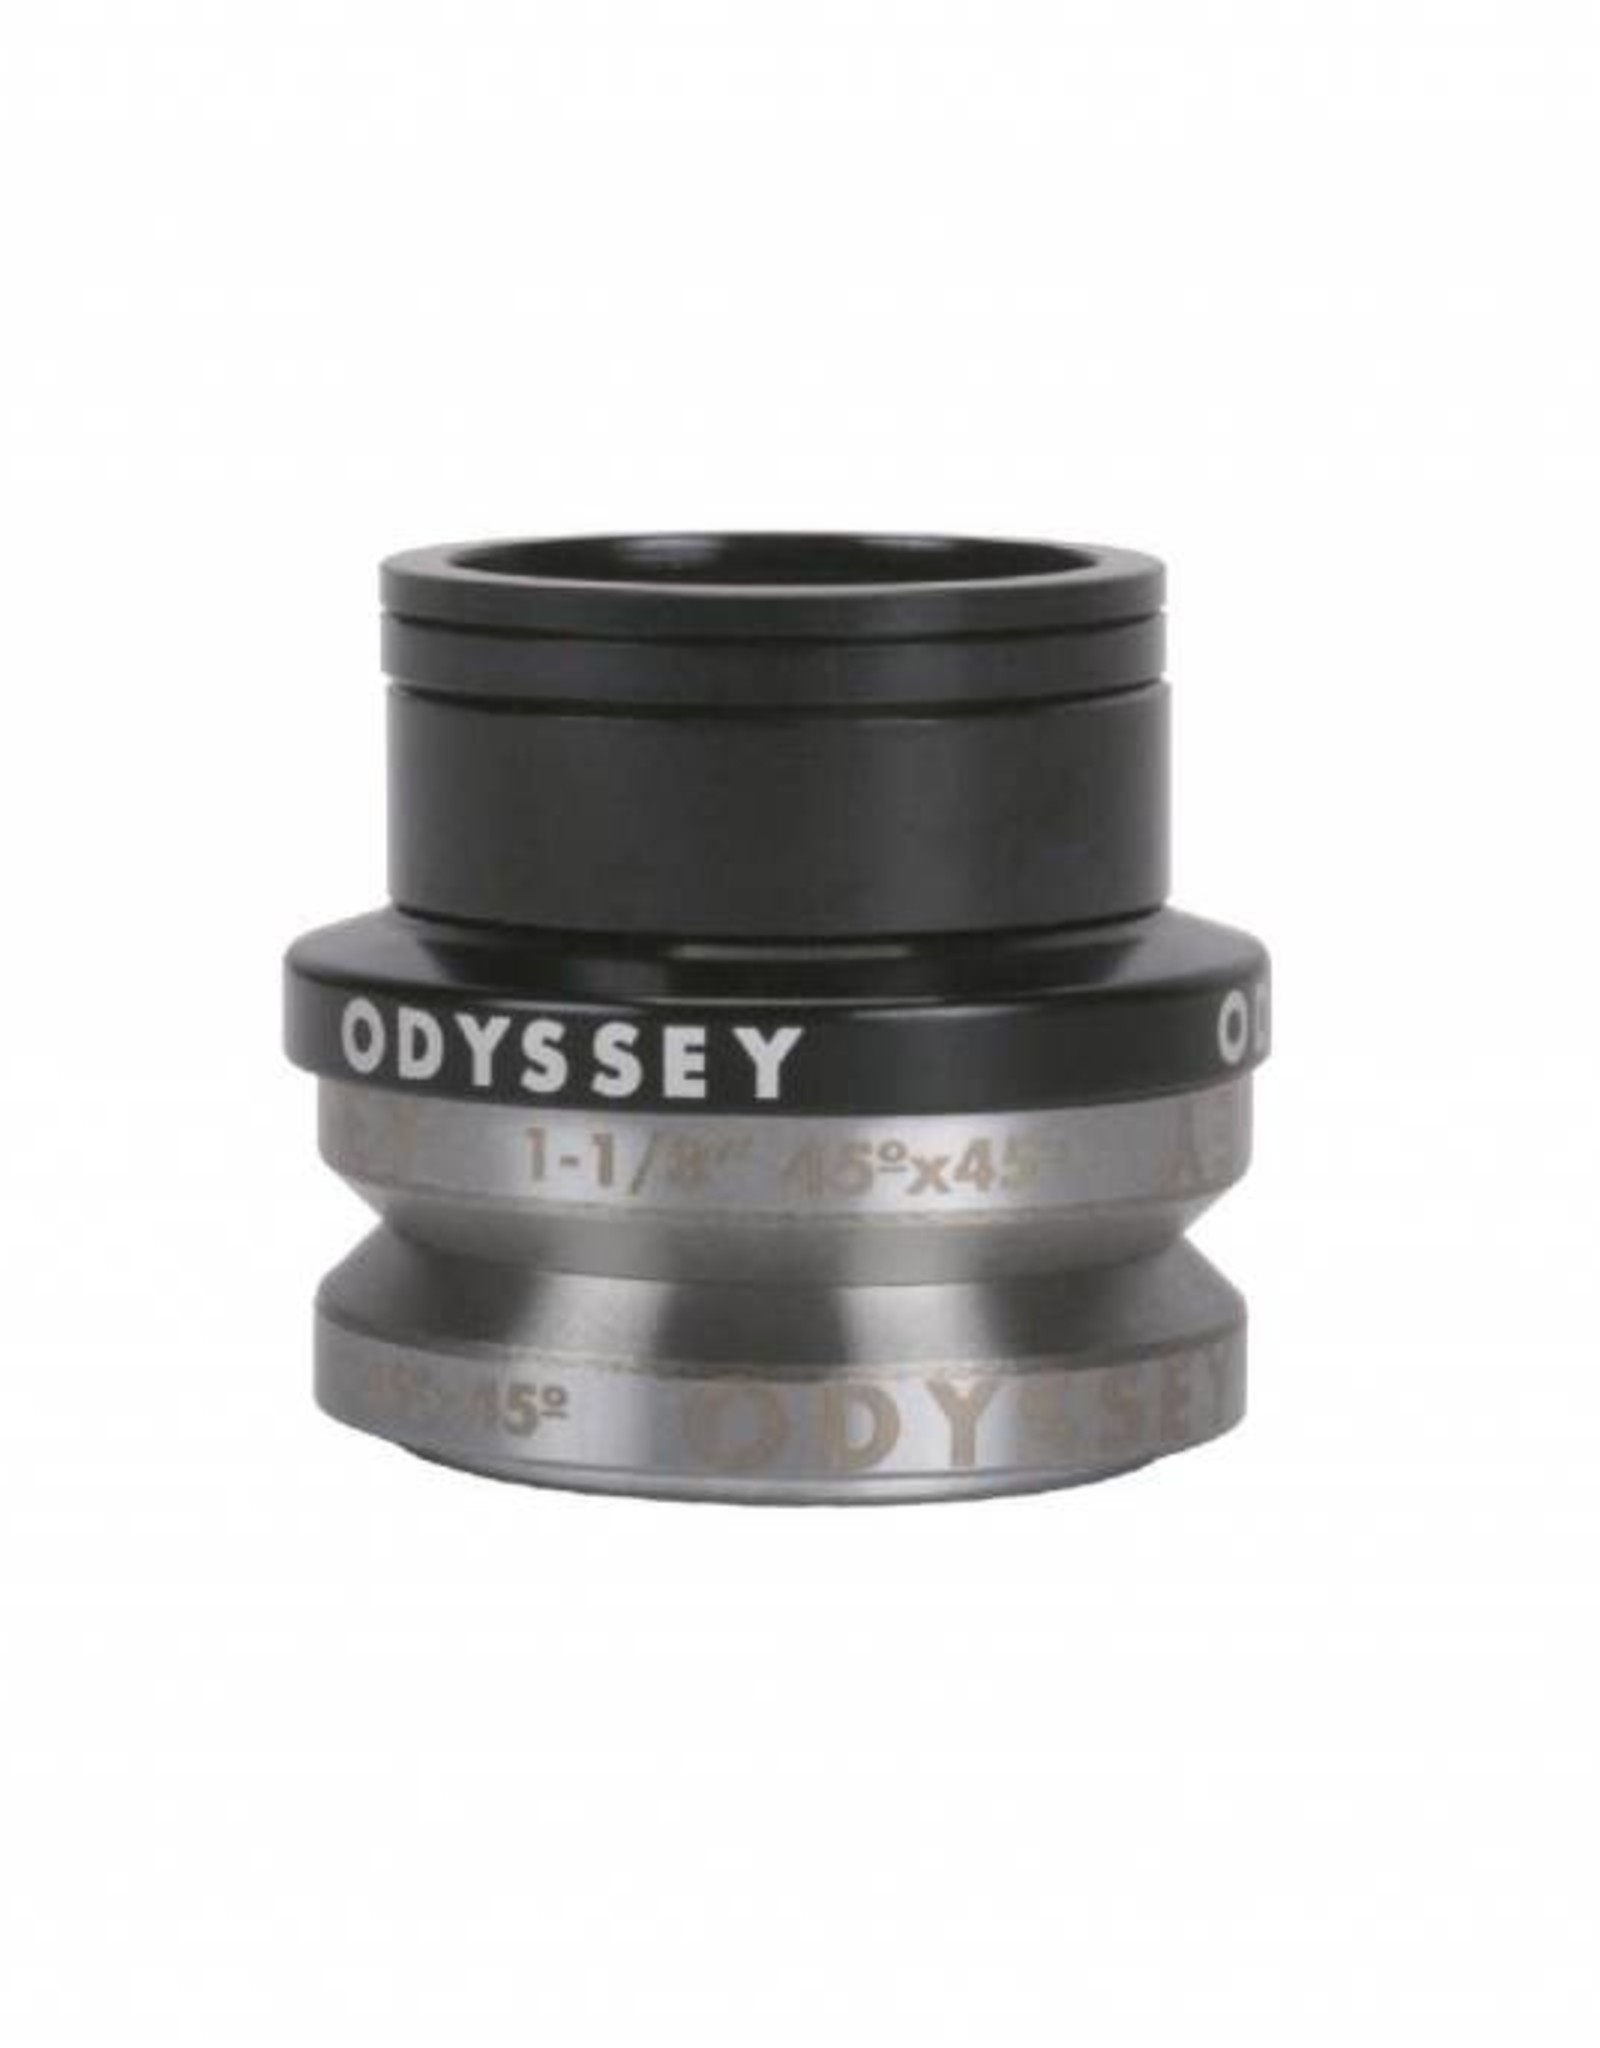 ODYSSEY ODYSSEY INTEGRATED HEADSET